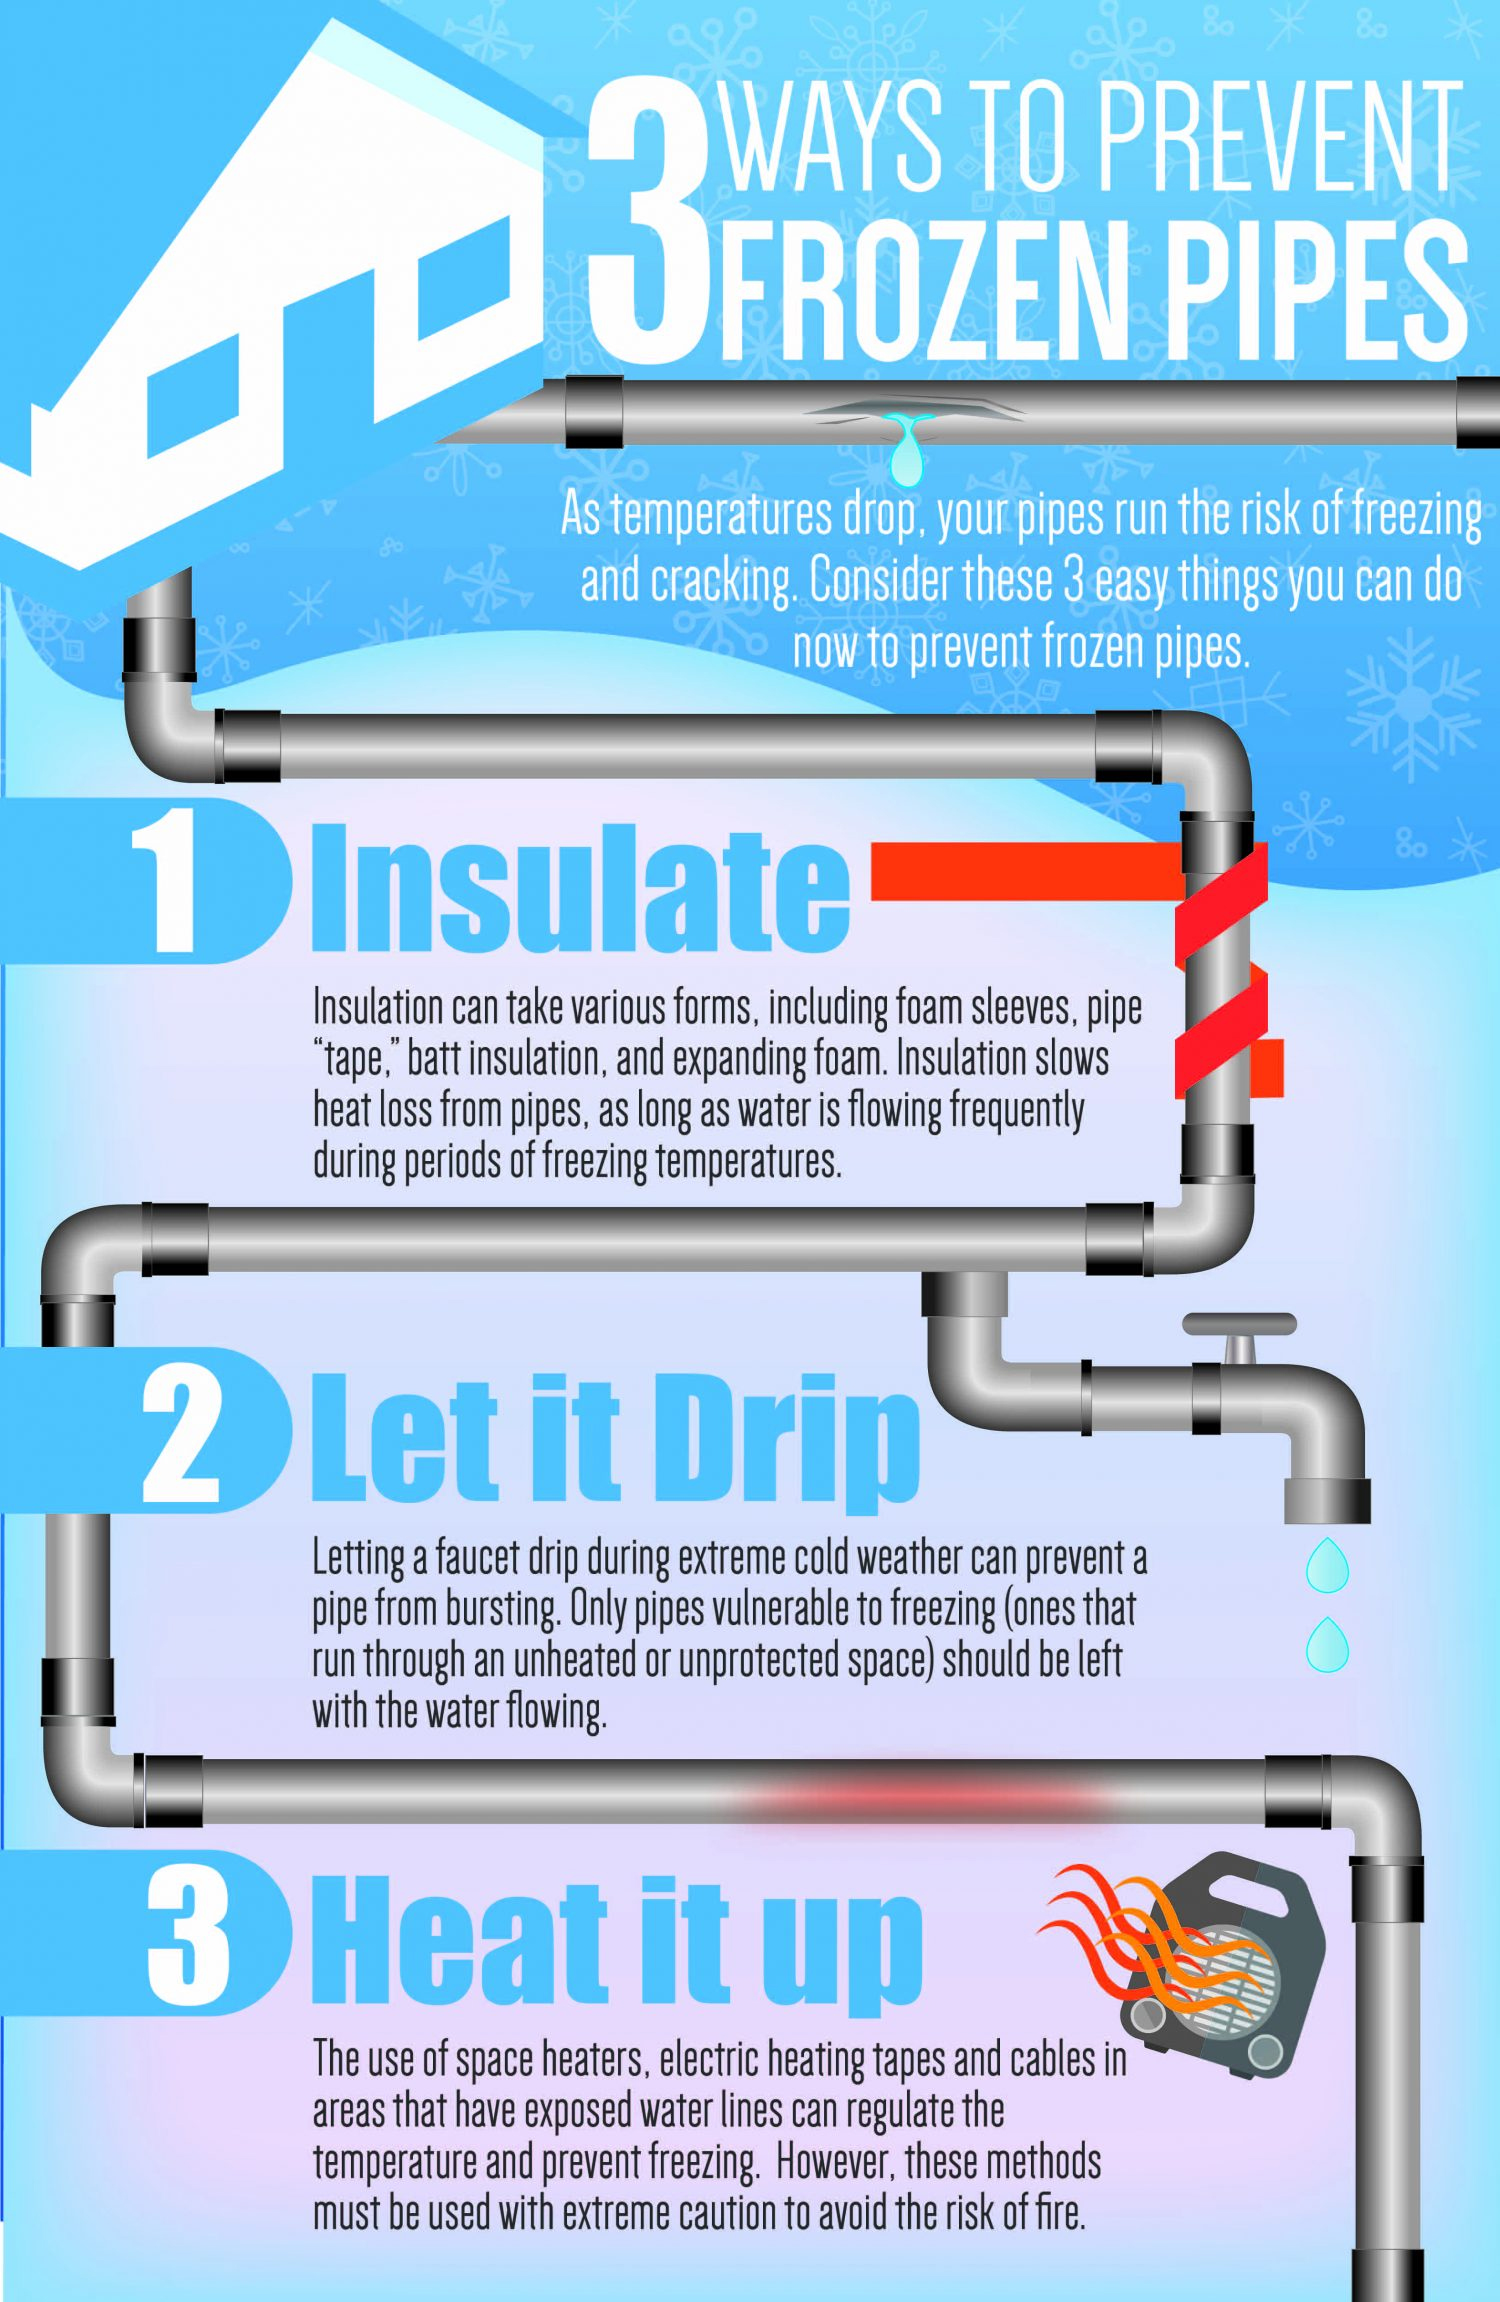 3 Ways to Prevent Frozen Pipes